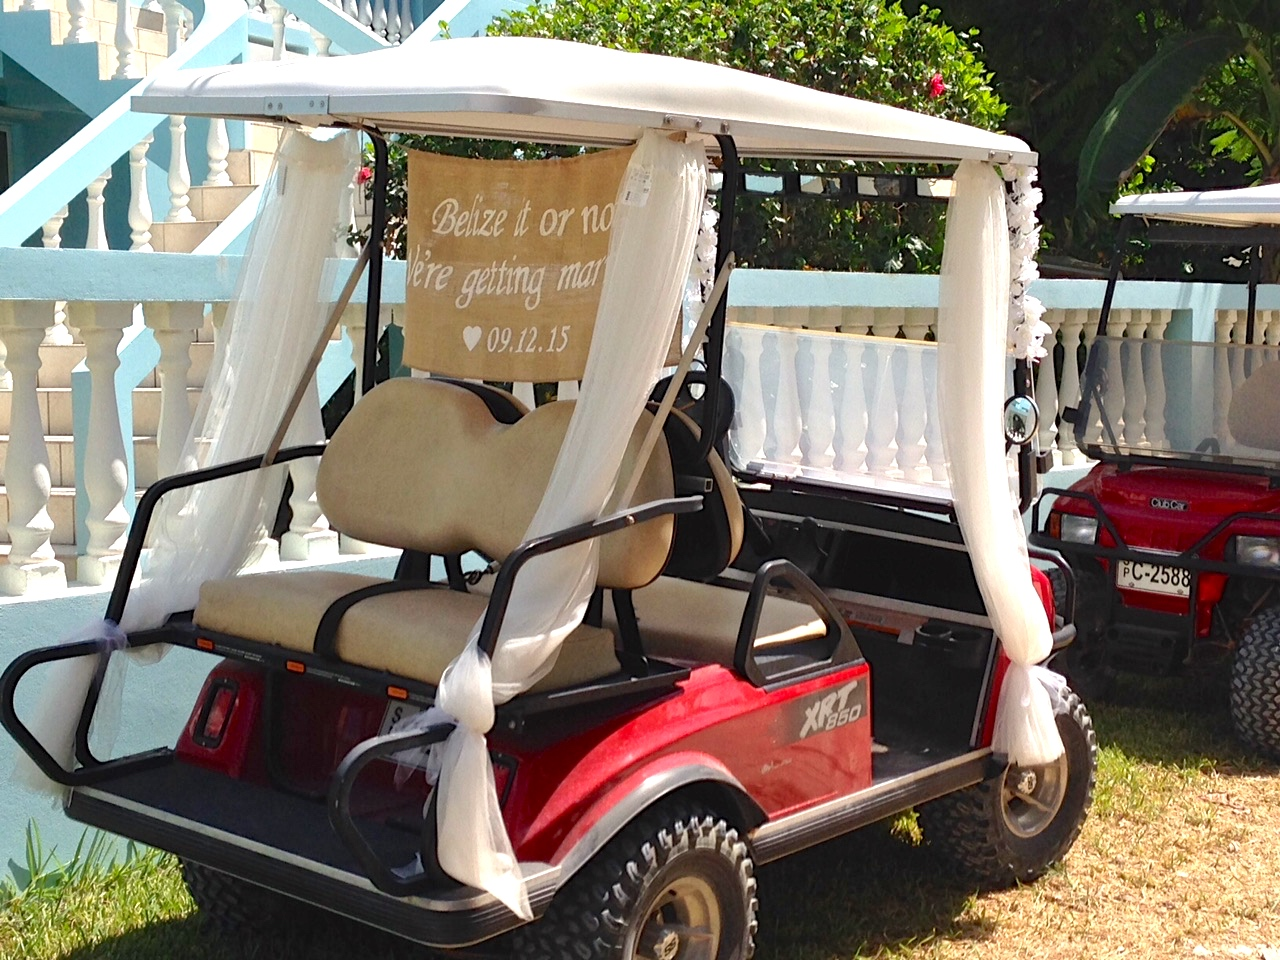 Weddings | Vacation Rentals, Ambergris Caye, Belize on ford think electric golf cart, burning man golf cart, pink golf cart,